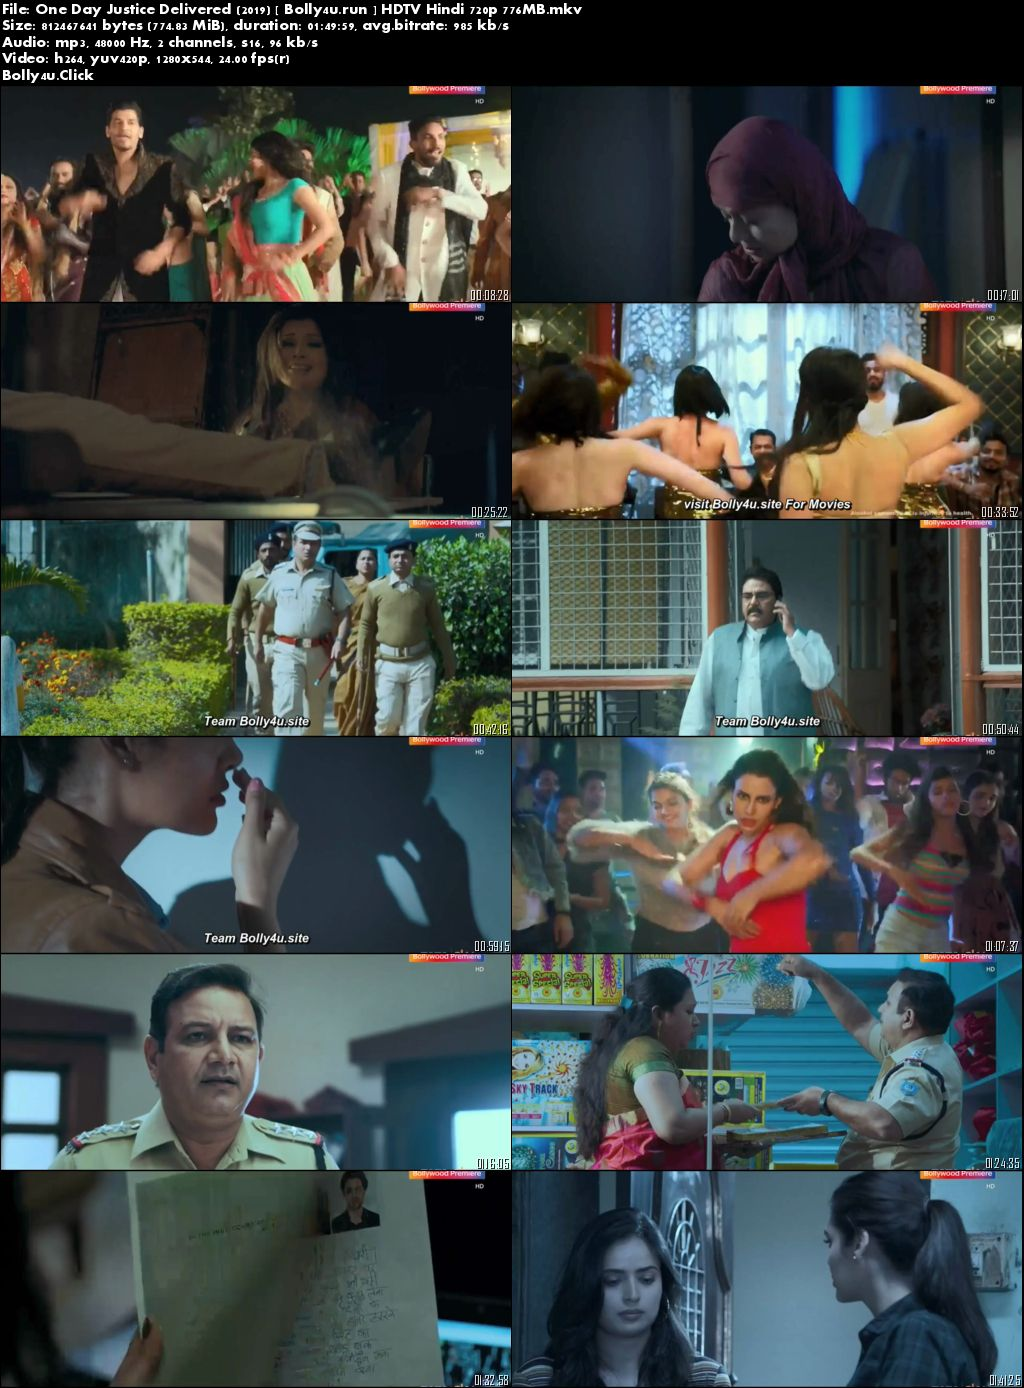 One Day Justice Delivered 2019 HDTV 750MB Hindi Movie Download 720p